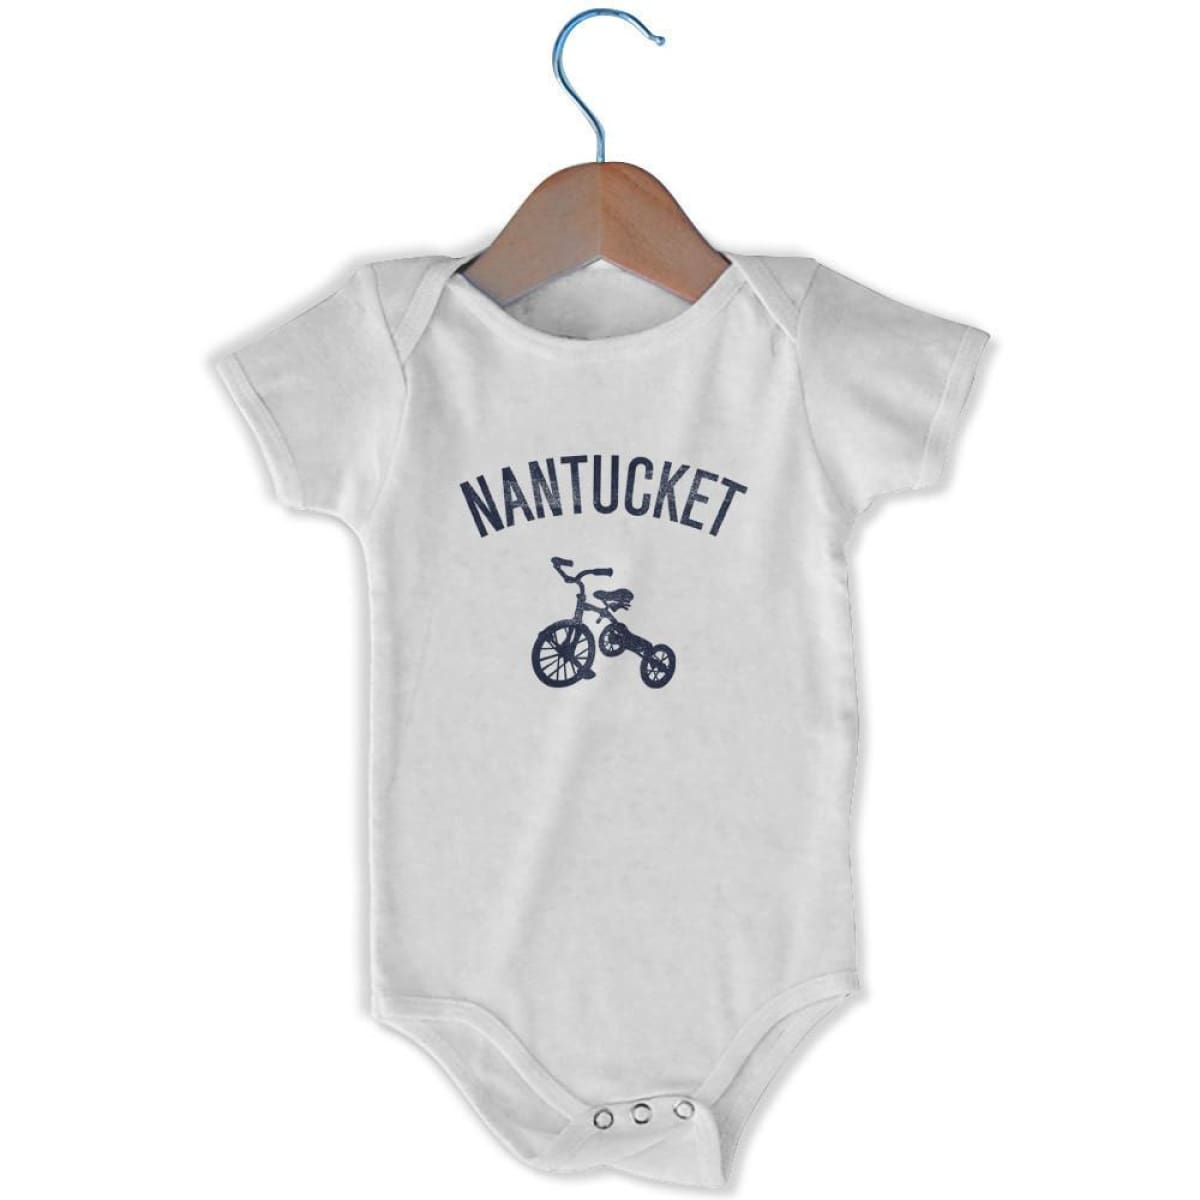 Nantucket City Tricycle Infant Onesie - White / 6 - 9 Months - Mile End City